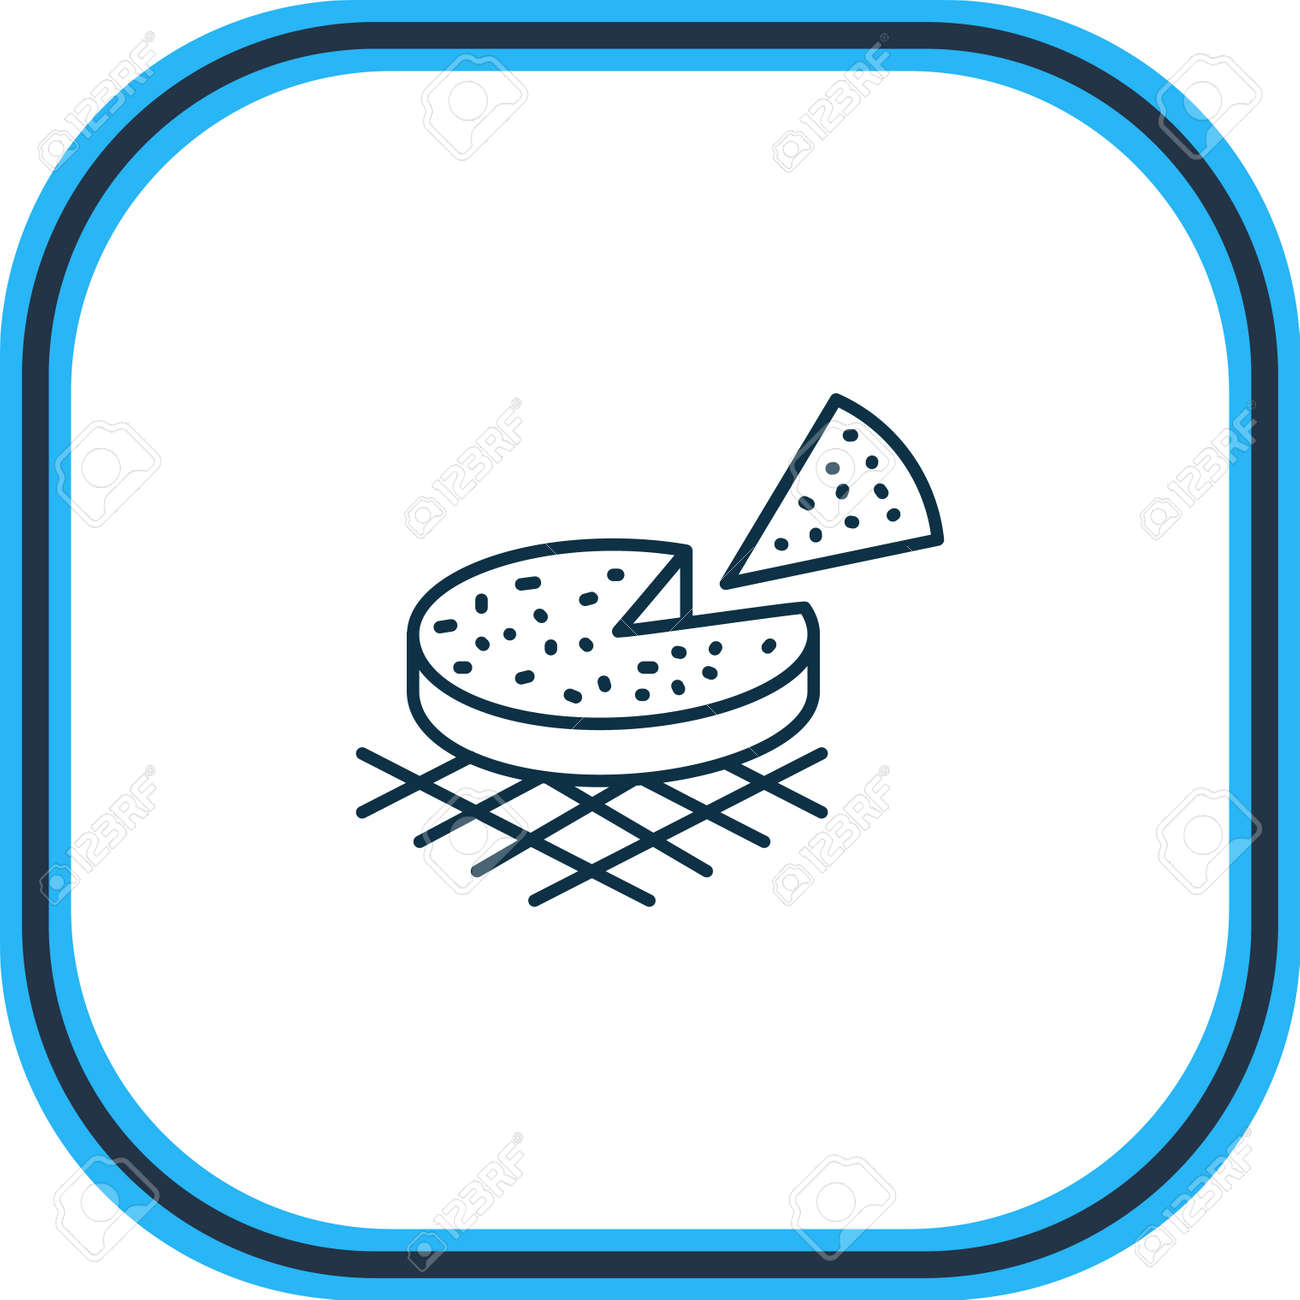 Vector illustration of finnish squeaky cheese icon line. Beautiful world cuisine element also can be used as pie icon element. - 158380331